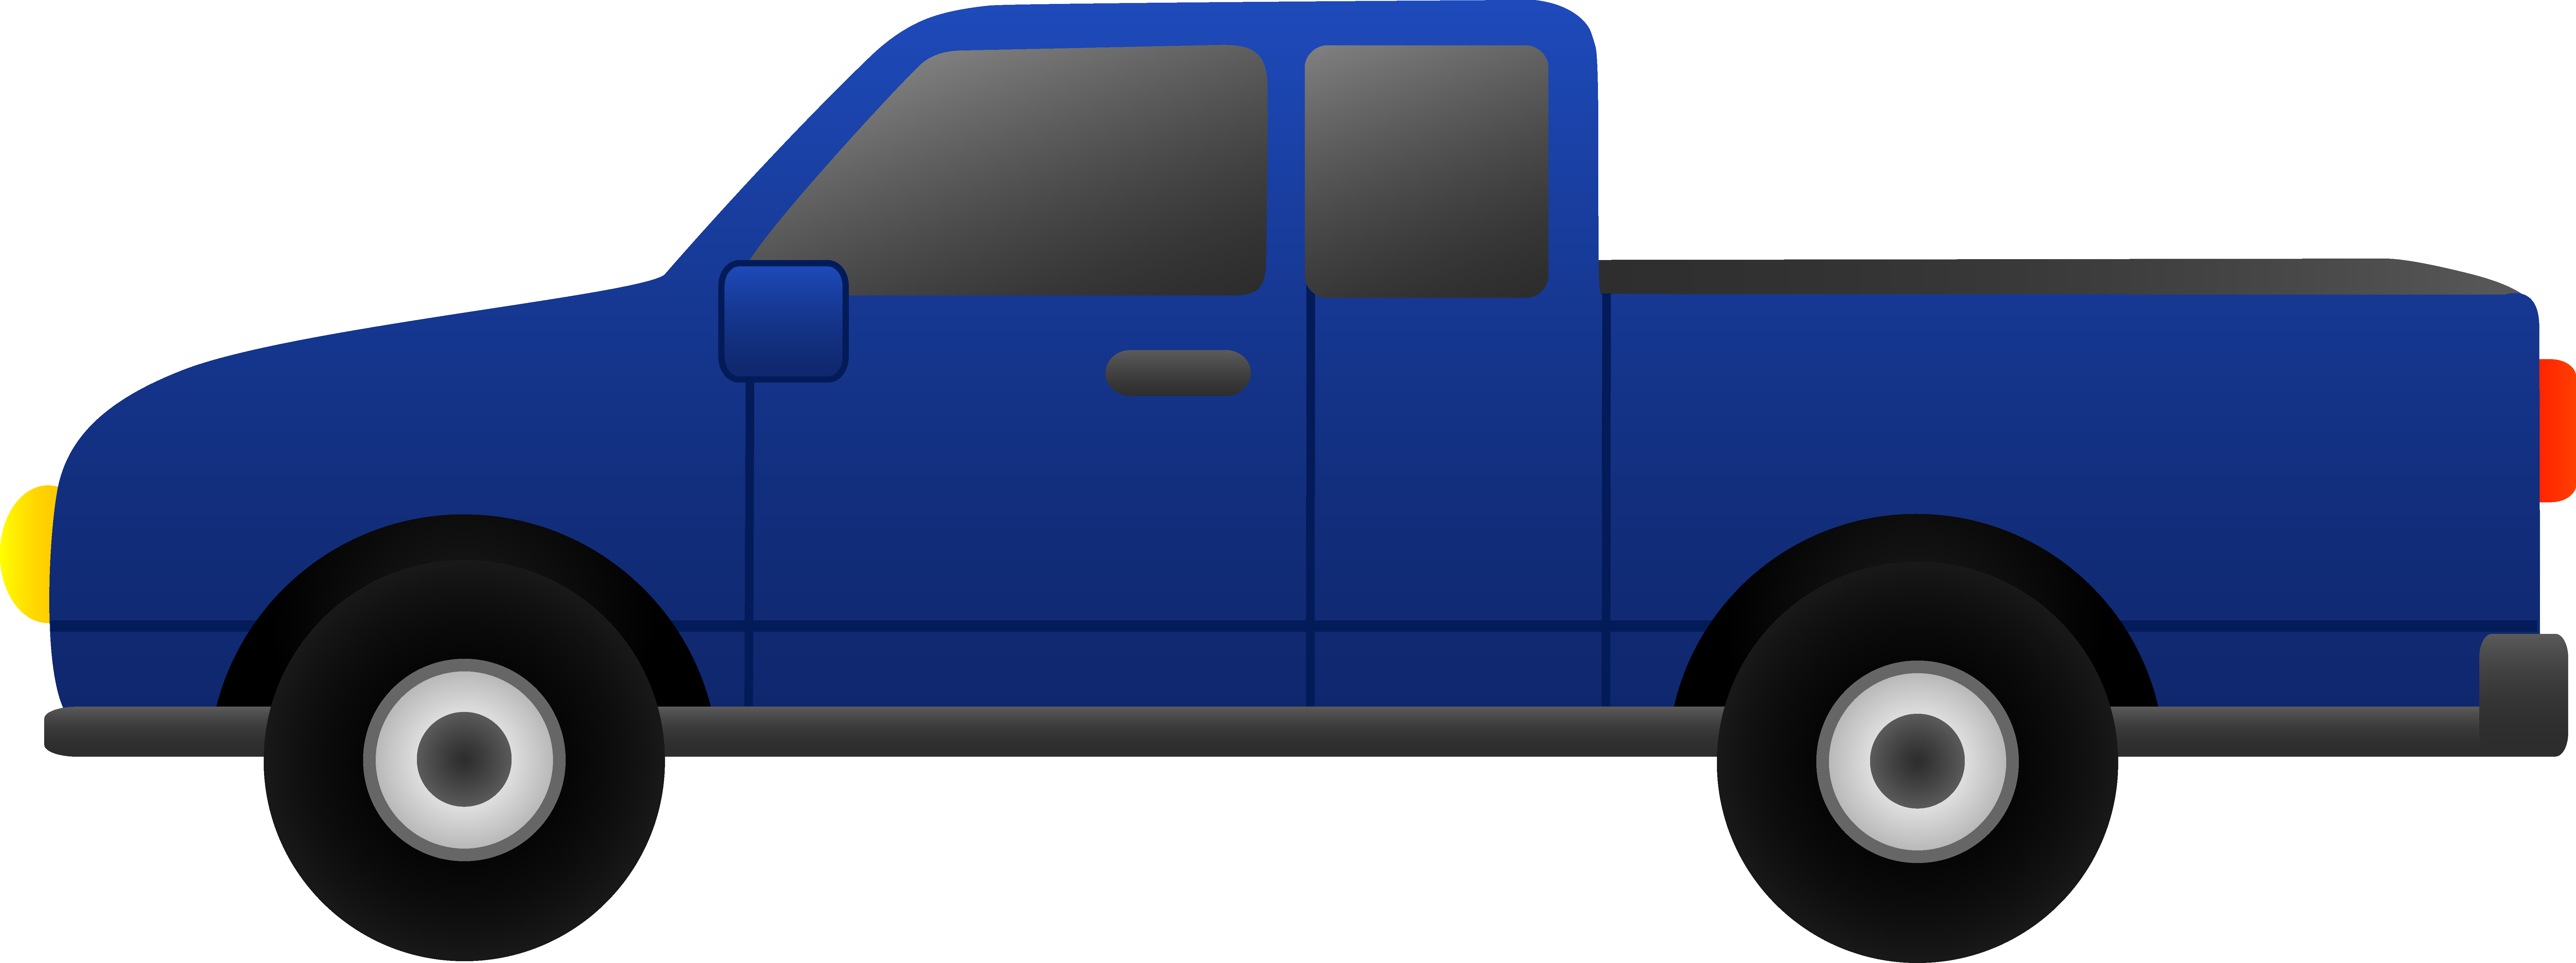 Minivan clipart cartoon. Semi truck at getdrawings